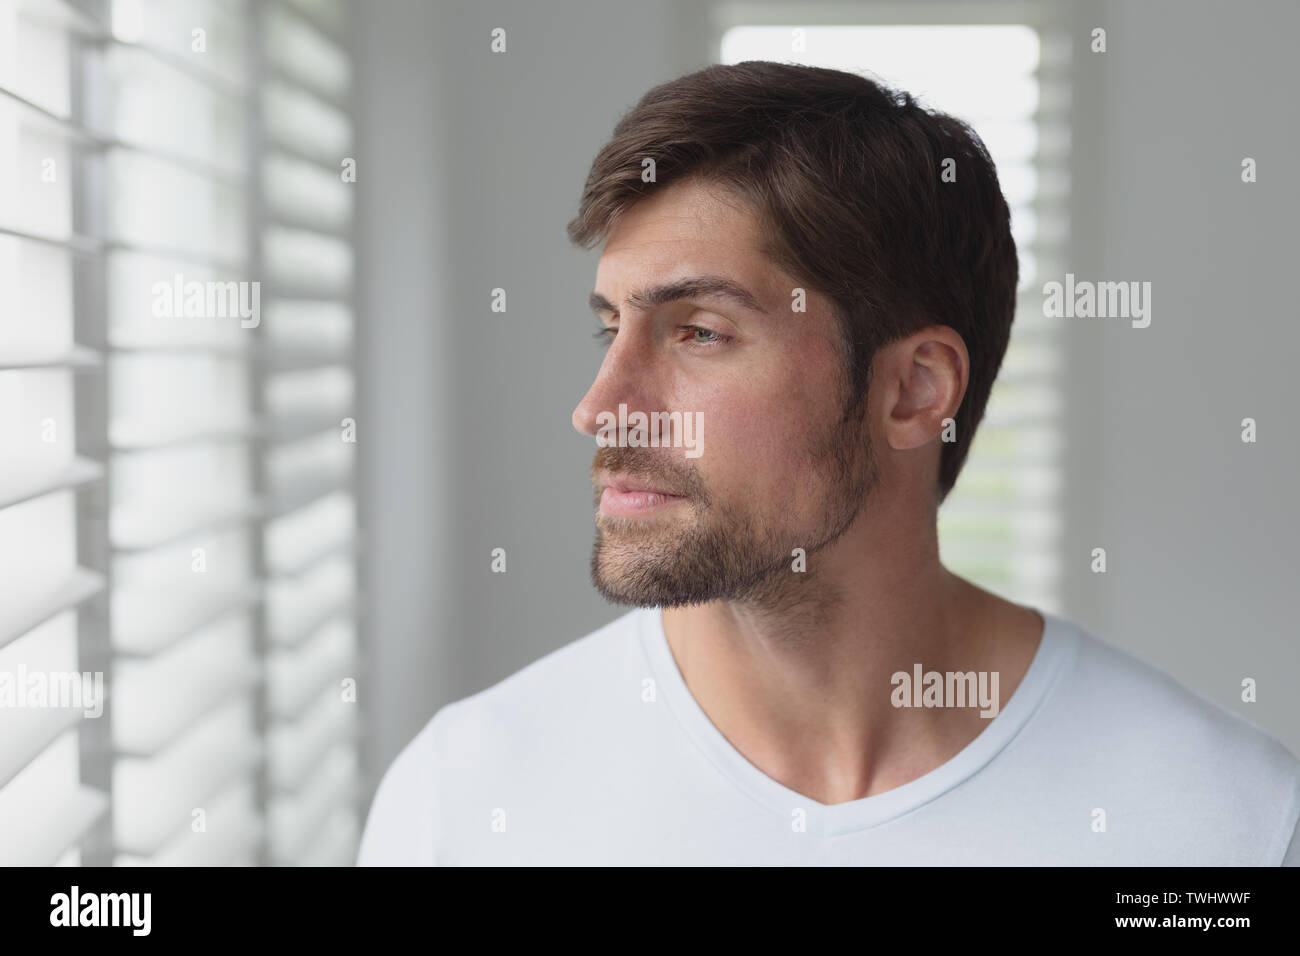 Side view of thoughtful Caucasian man looking through window blind at home - Stock Image